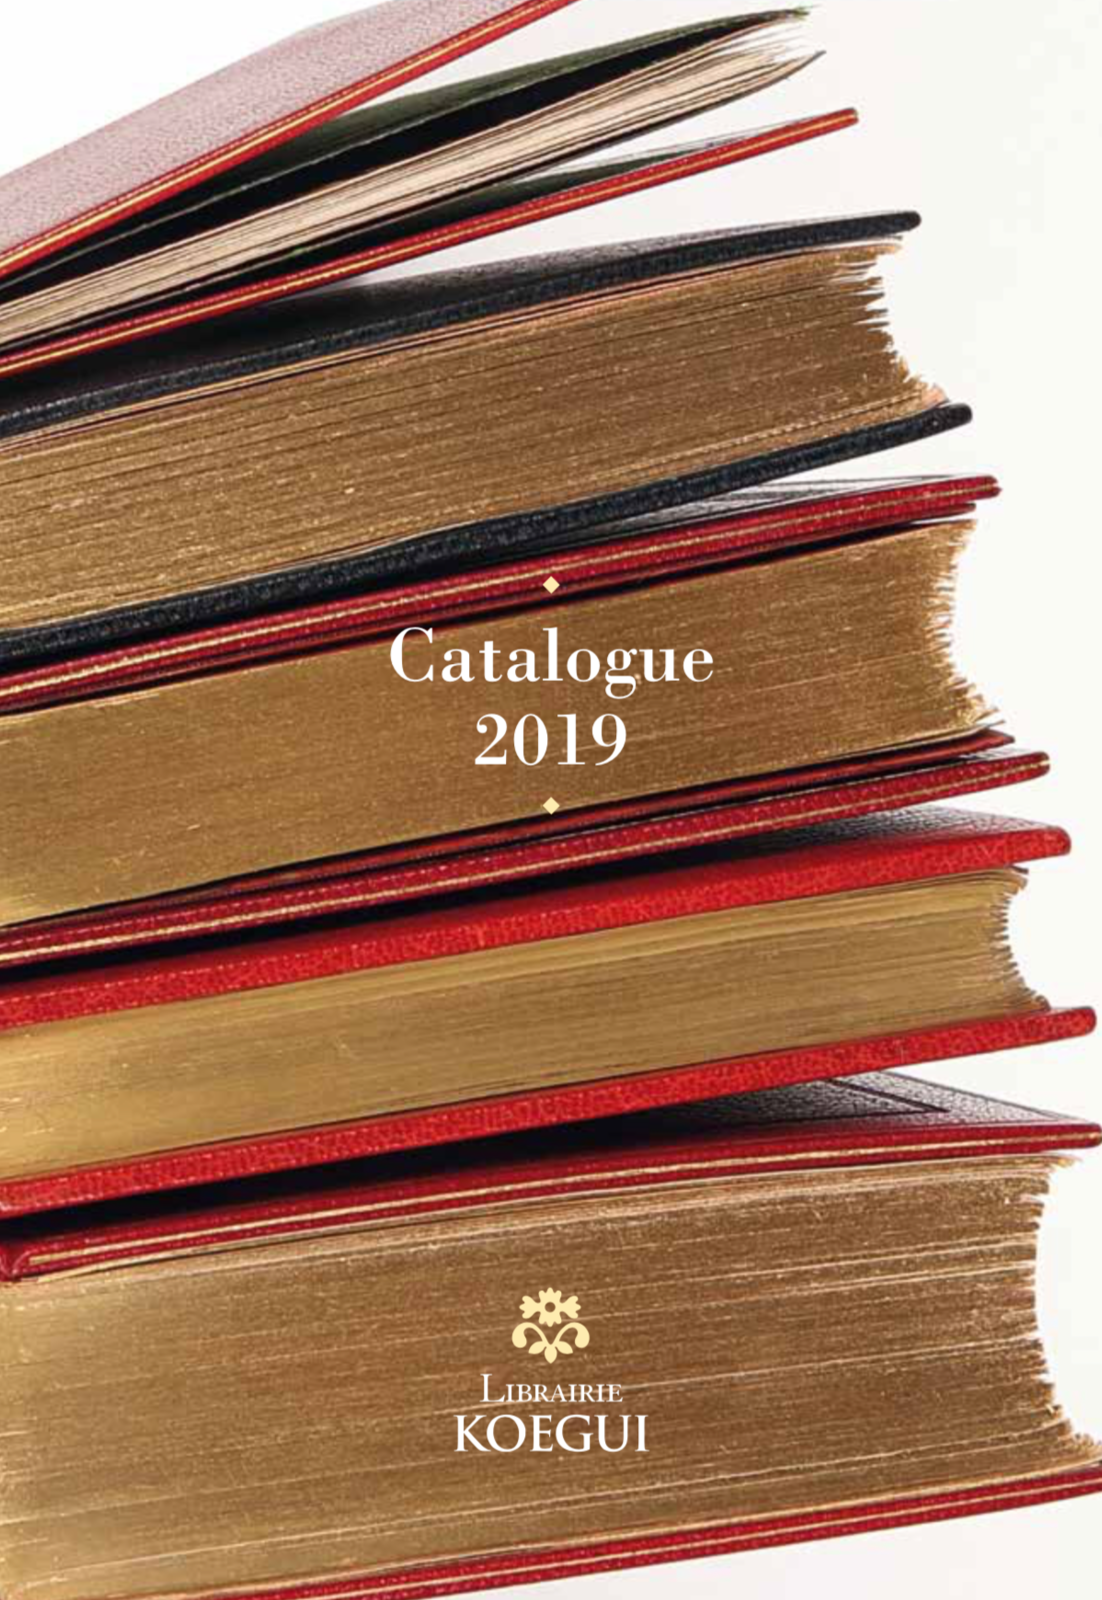 Catalogue Paris 2019